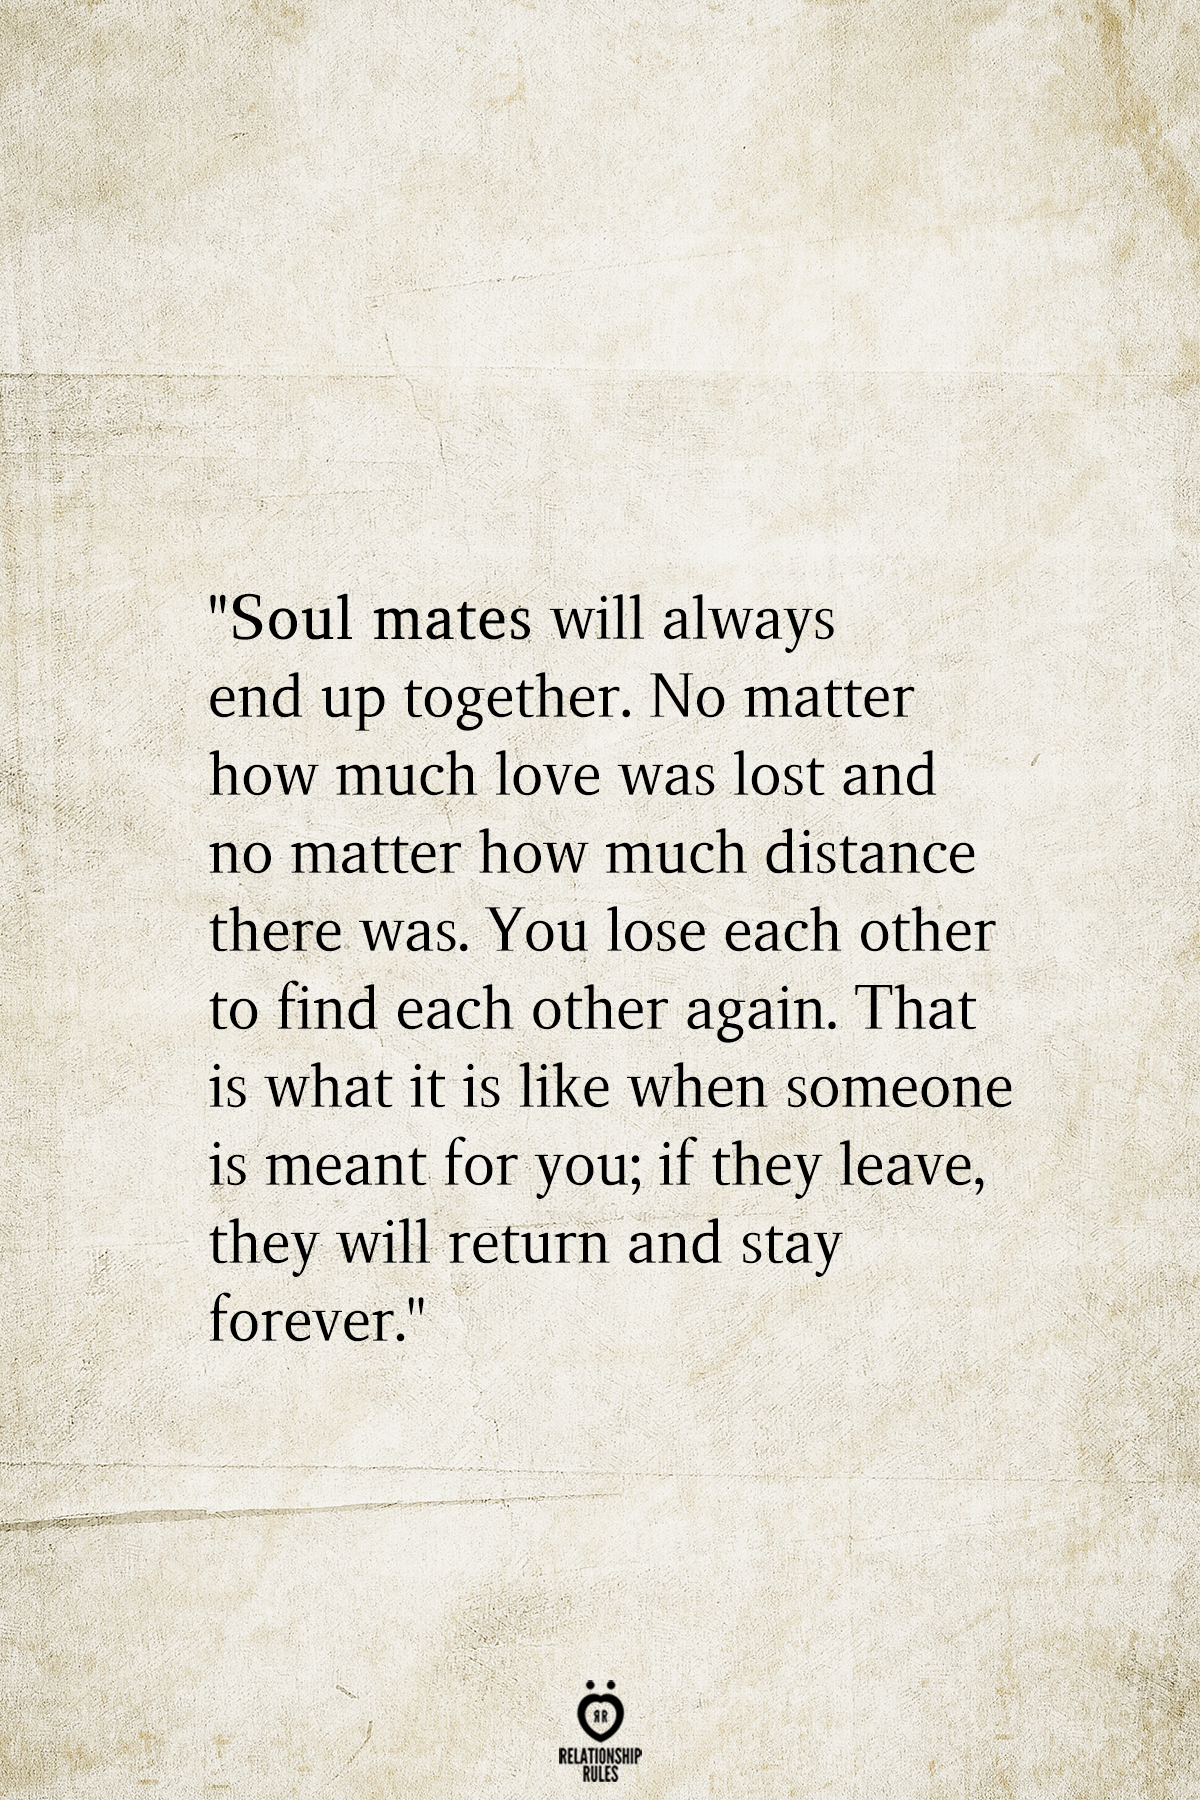 25 Relationship Rules To Rekindle Your Passion Soul Love Quotes Love You Forever Quotes Forever Love Quotes